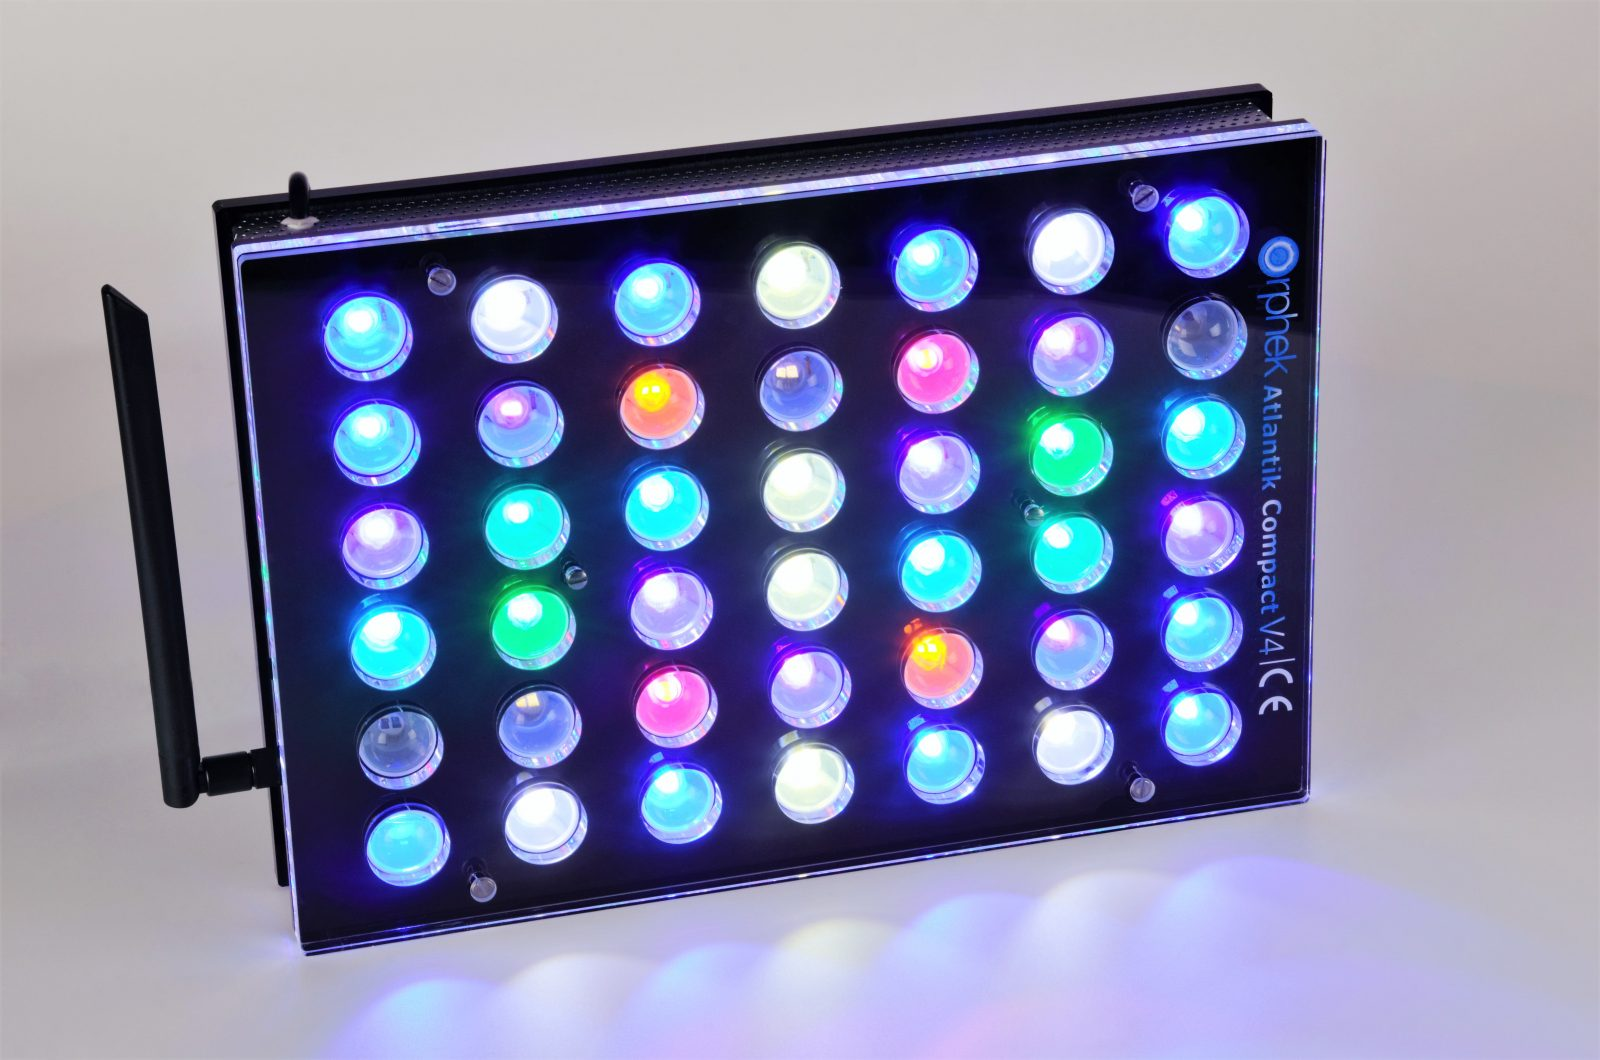 Orphek-Aquarium-LED-Lighting-Atlantik -Compact-V4-light -on-kanal 1 + 2 + 3 + 4